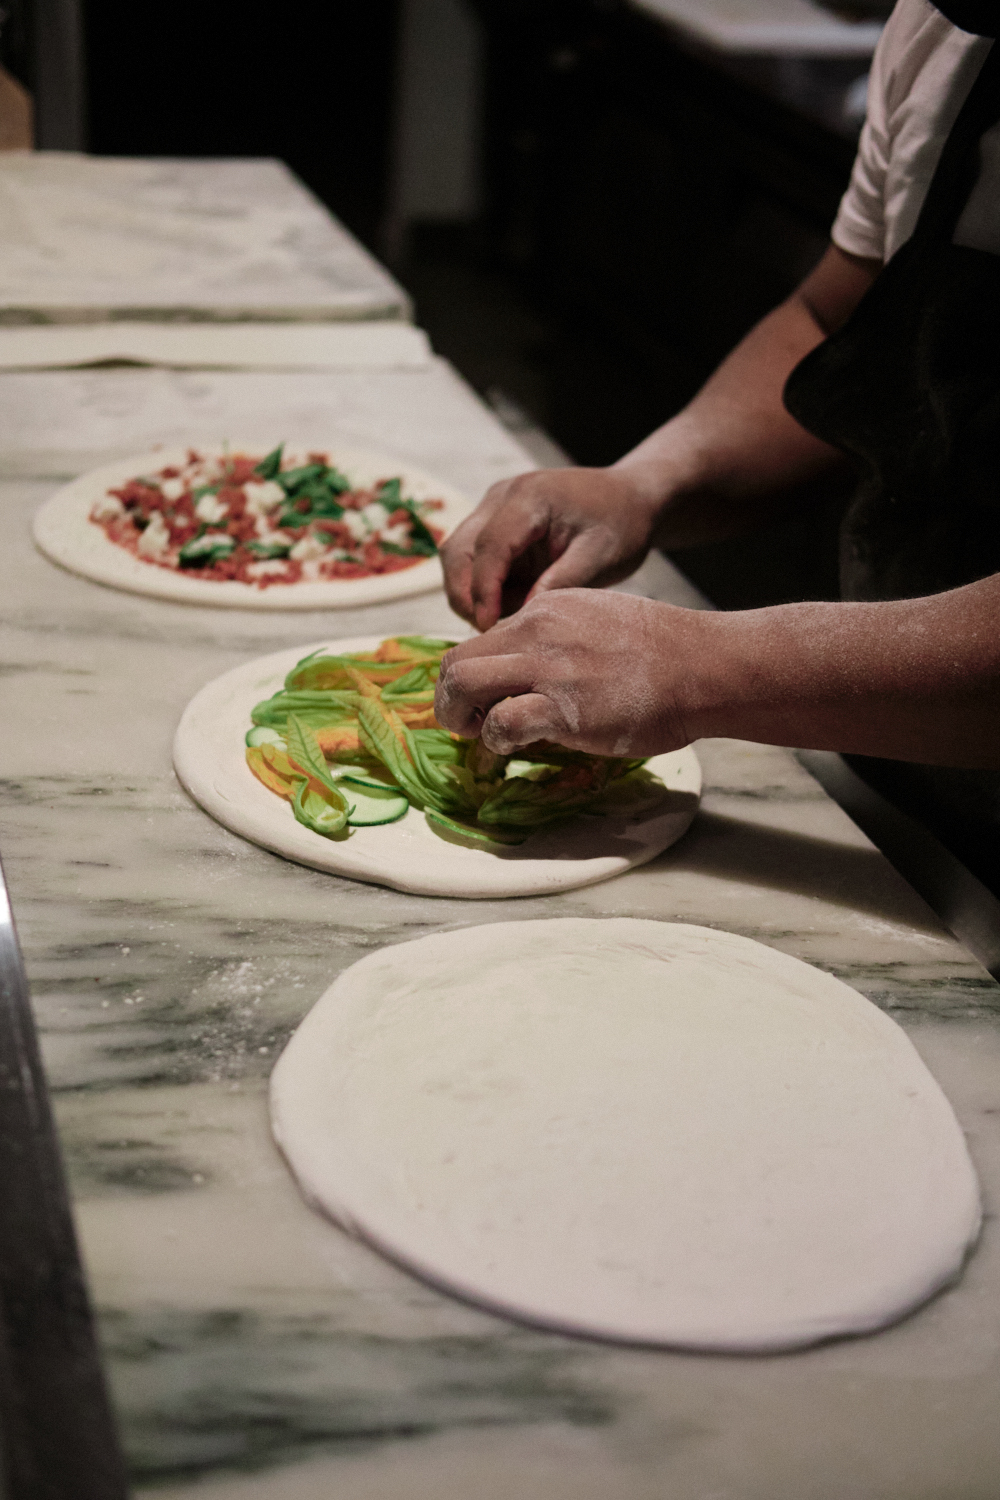 Chef Daniel Cutler of Ronan says customers like watching their pizzas being made by hand.